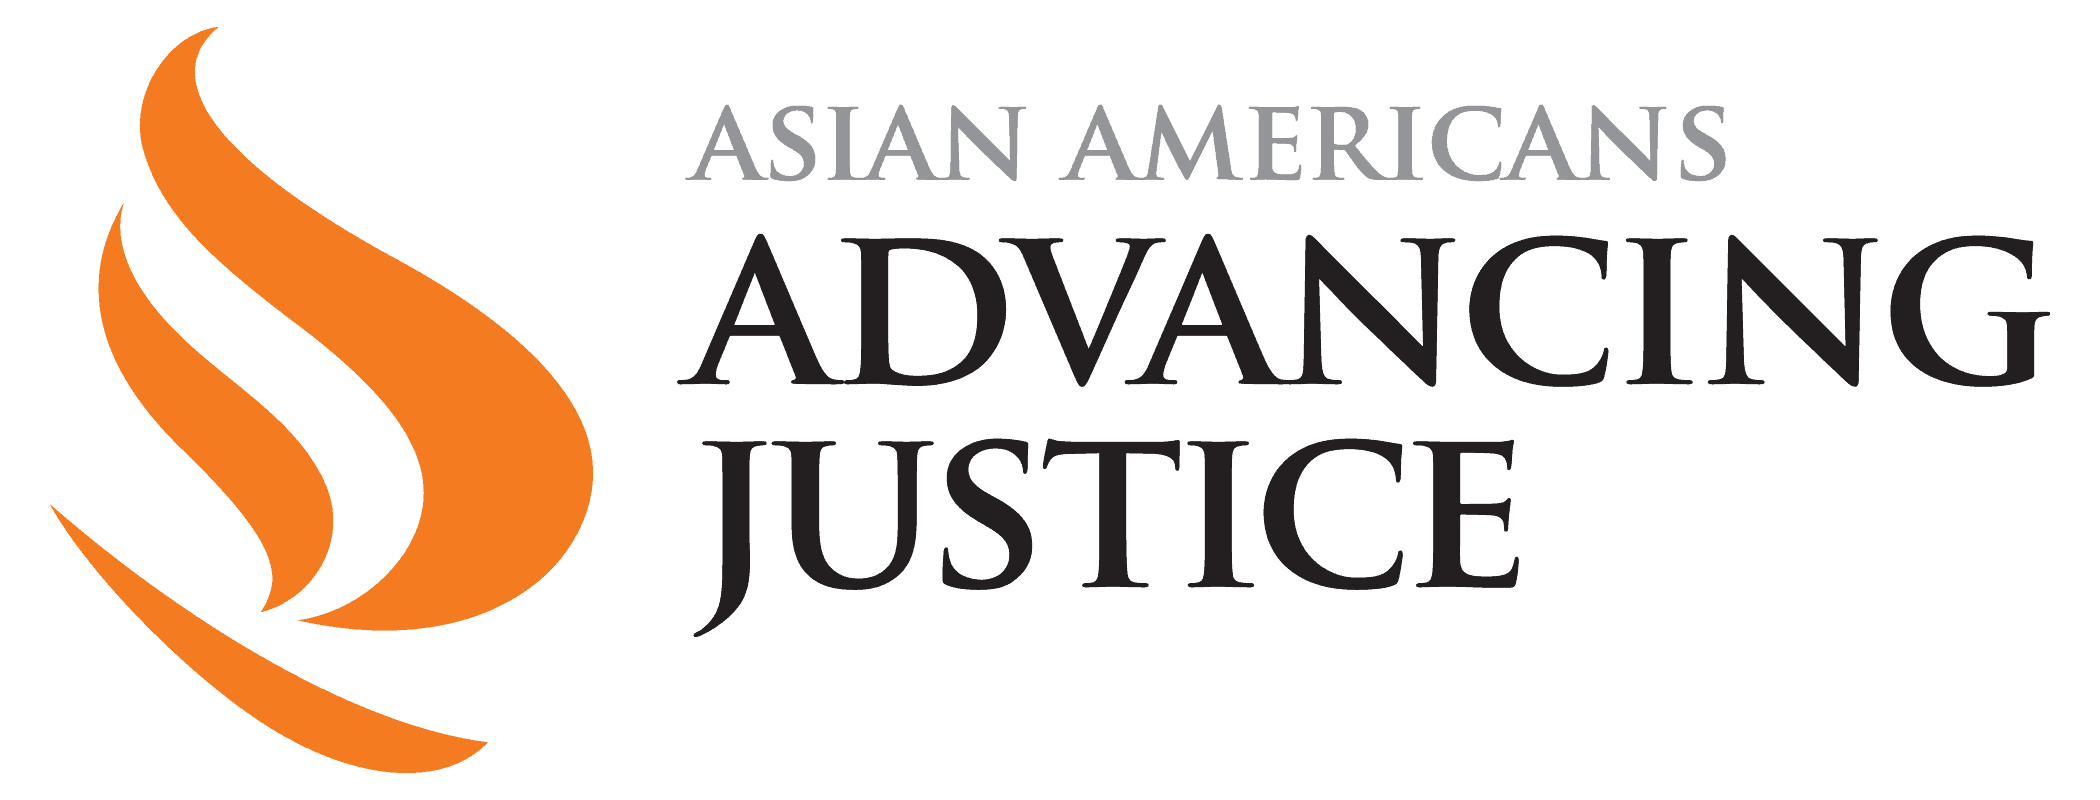 Asian Americans Advancing Justice